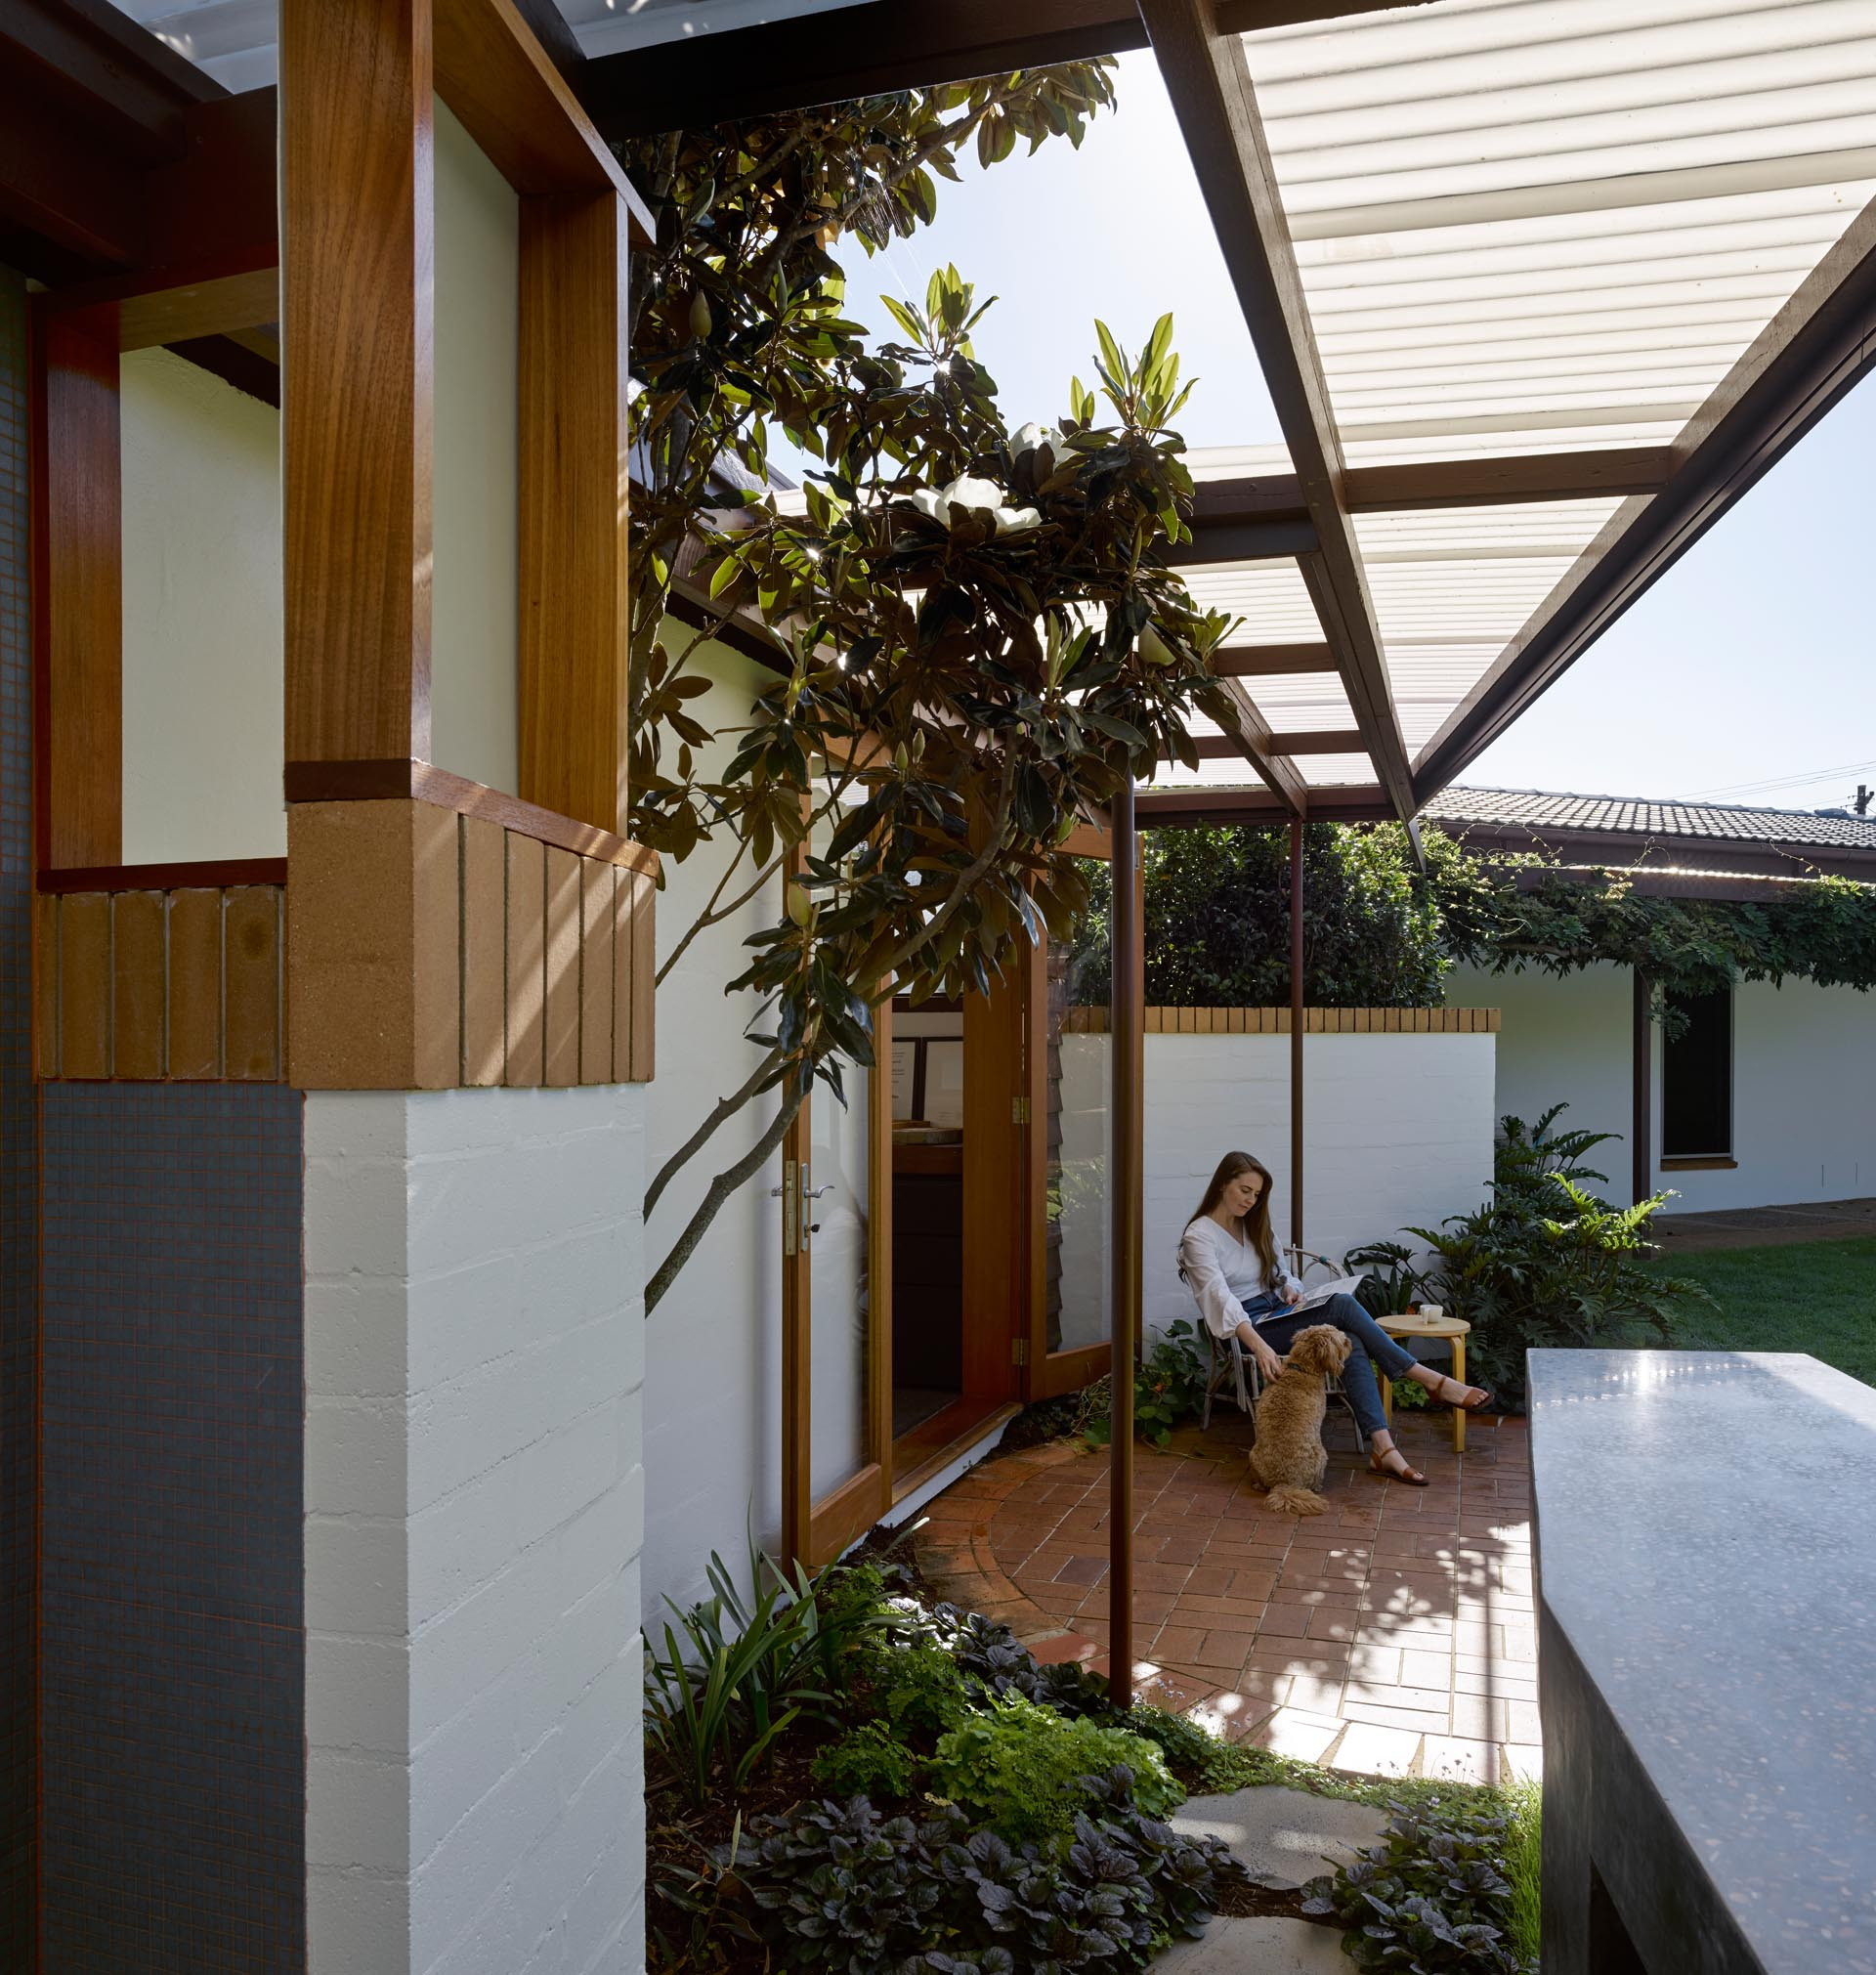 A converted carport with a brick patio.